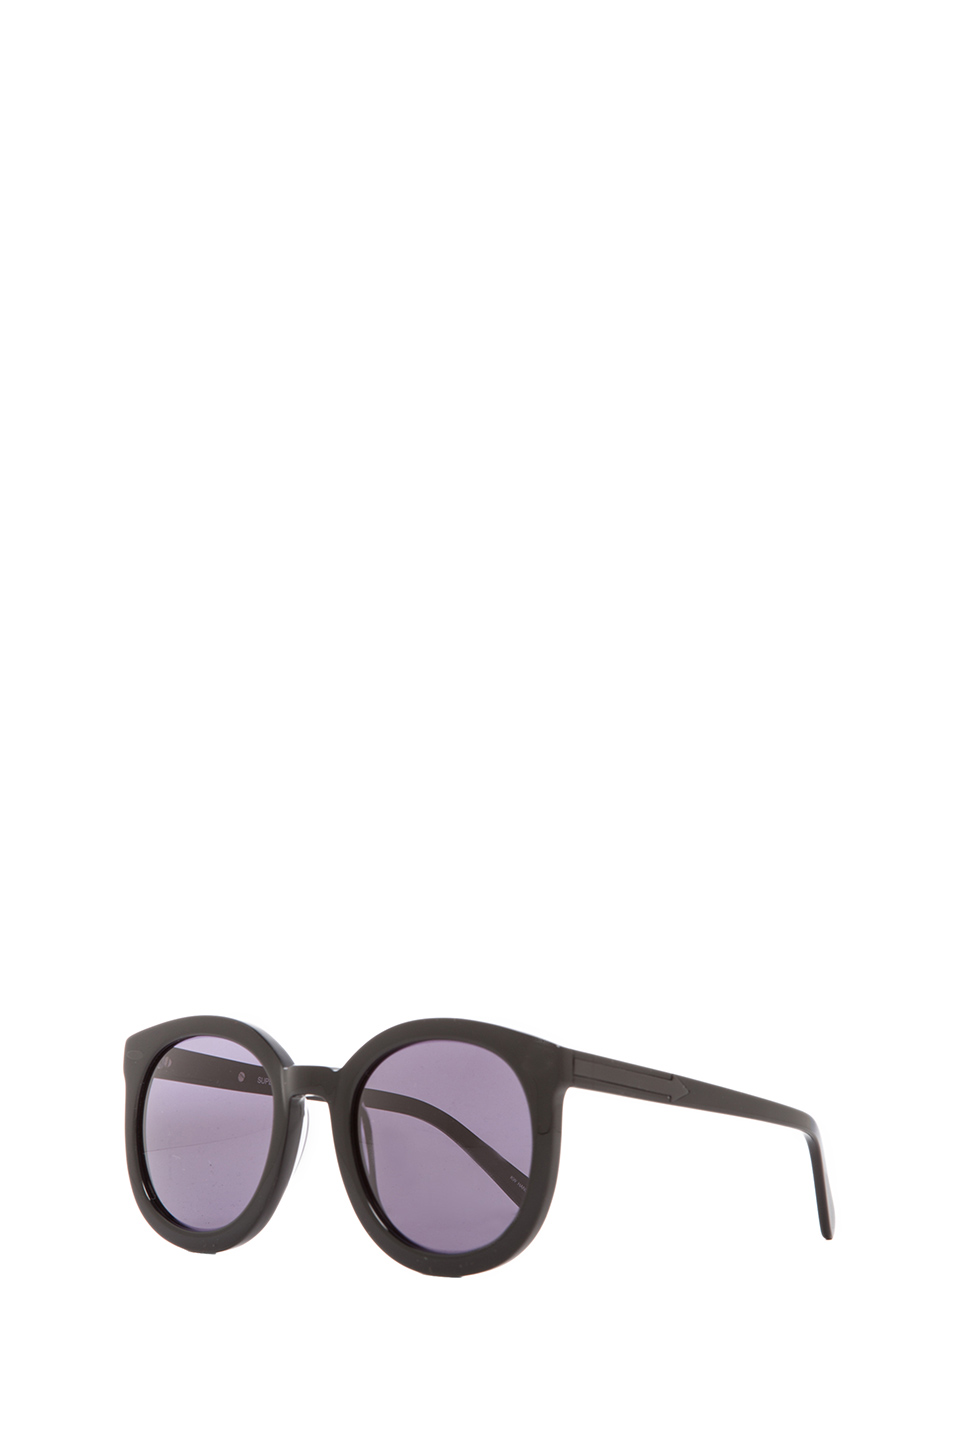 Karen Walker Super Duper Strength in Black from REVOLVEclothing.com